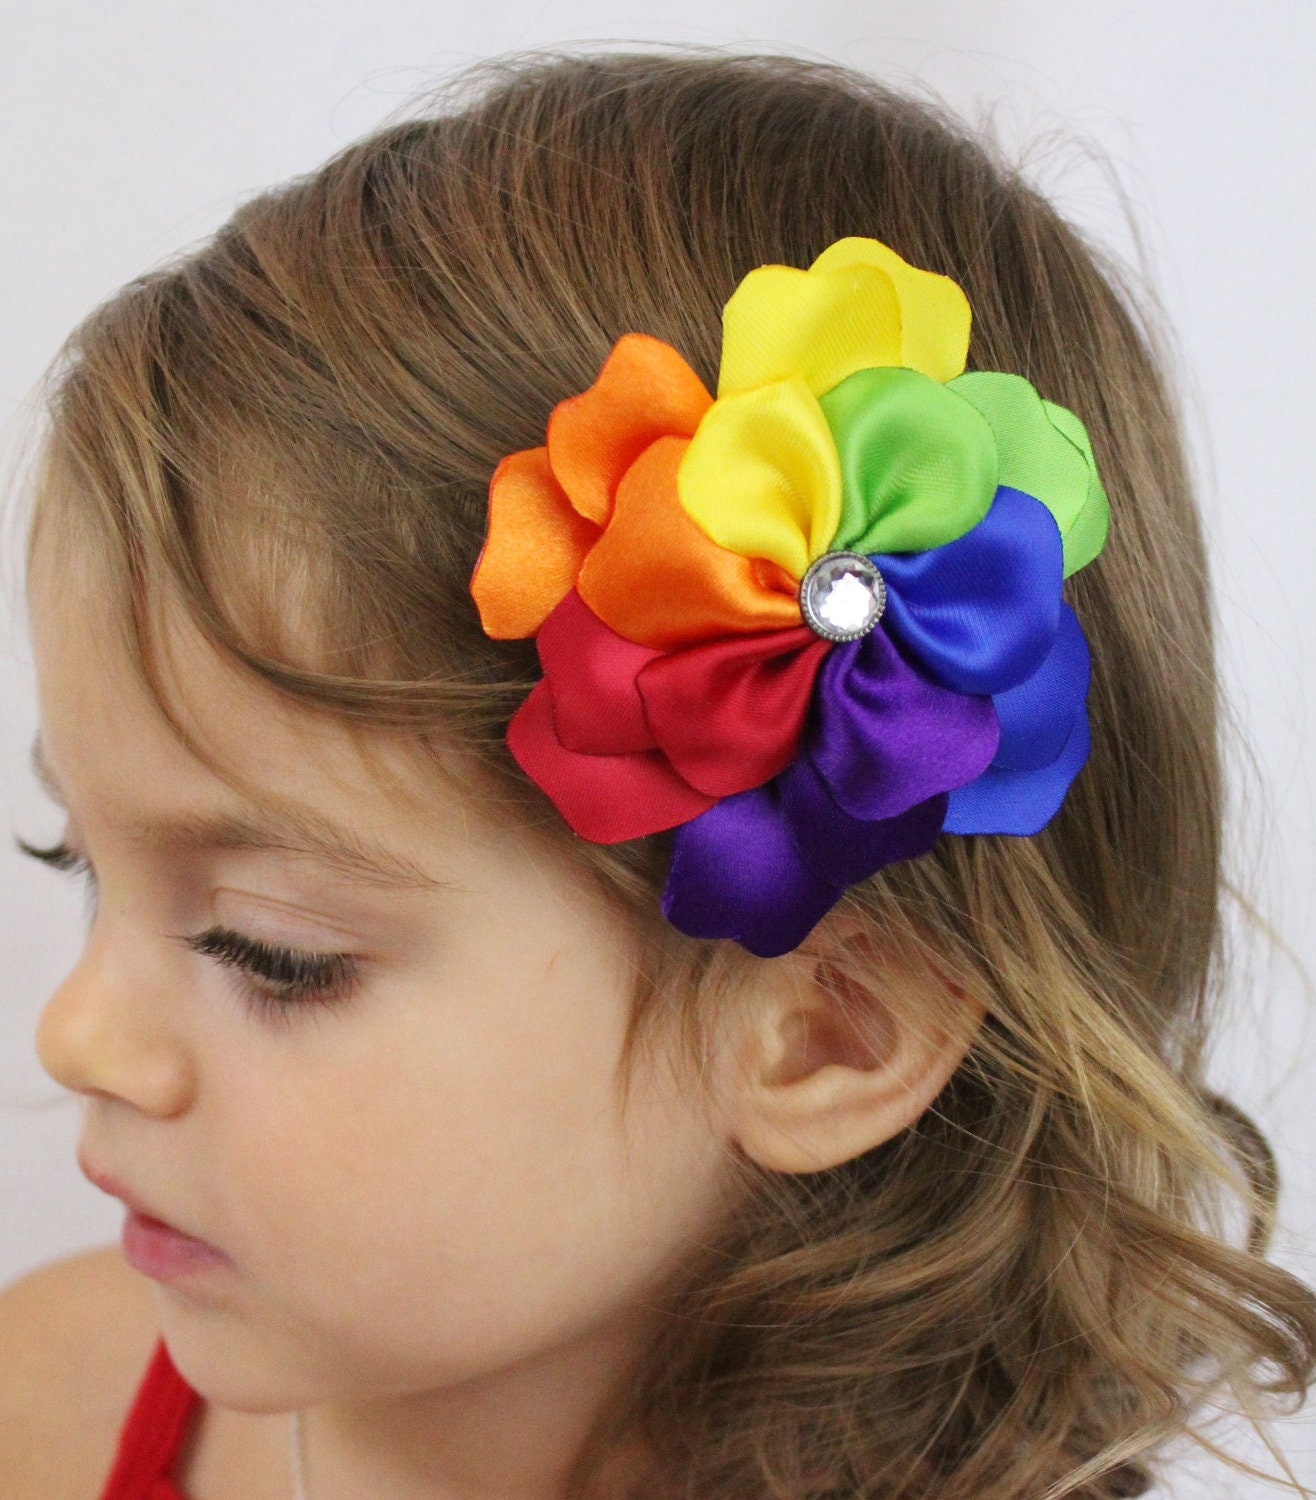 The Hair Bow Company's mission is to offer you the best selection of quality hair bows, tutus, trendy outfits, and boutique gifts for your little girl. We love helping you celebrate life's milestones.